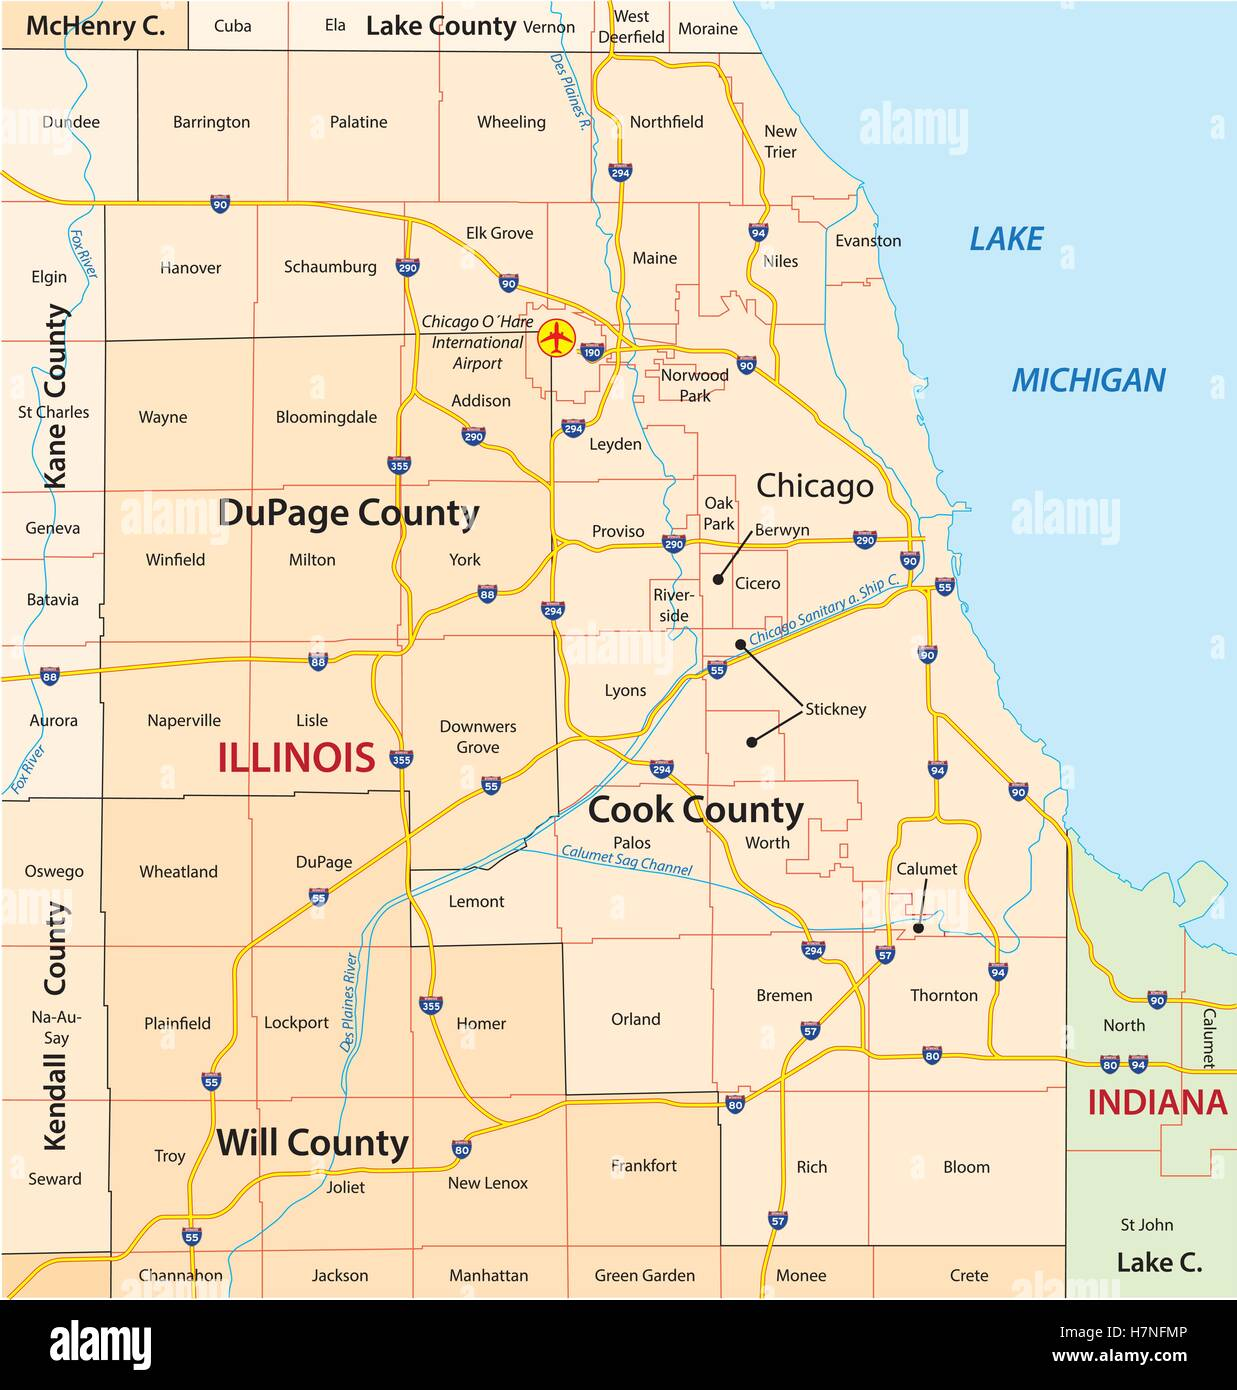 City Map Of Chicago Stock Photos & City Map Of Chicago Stock ...